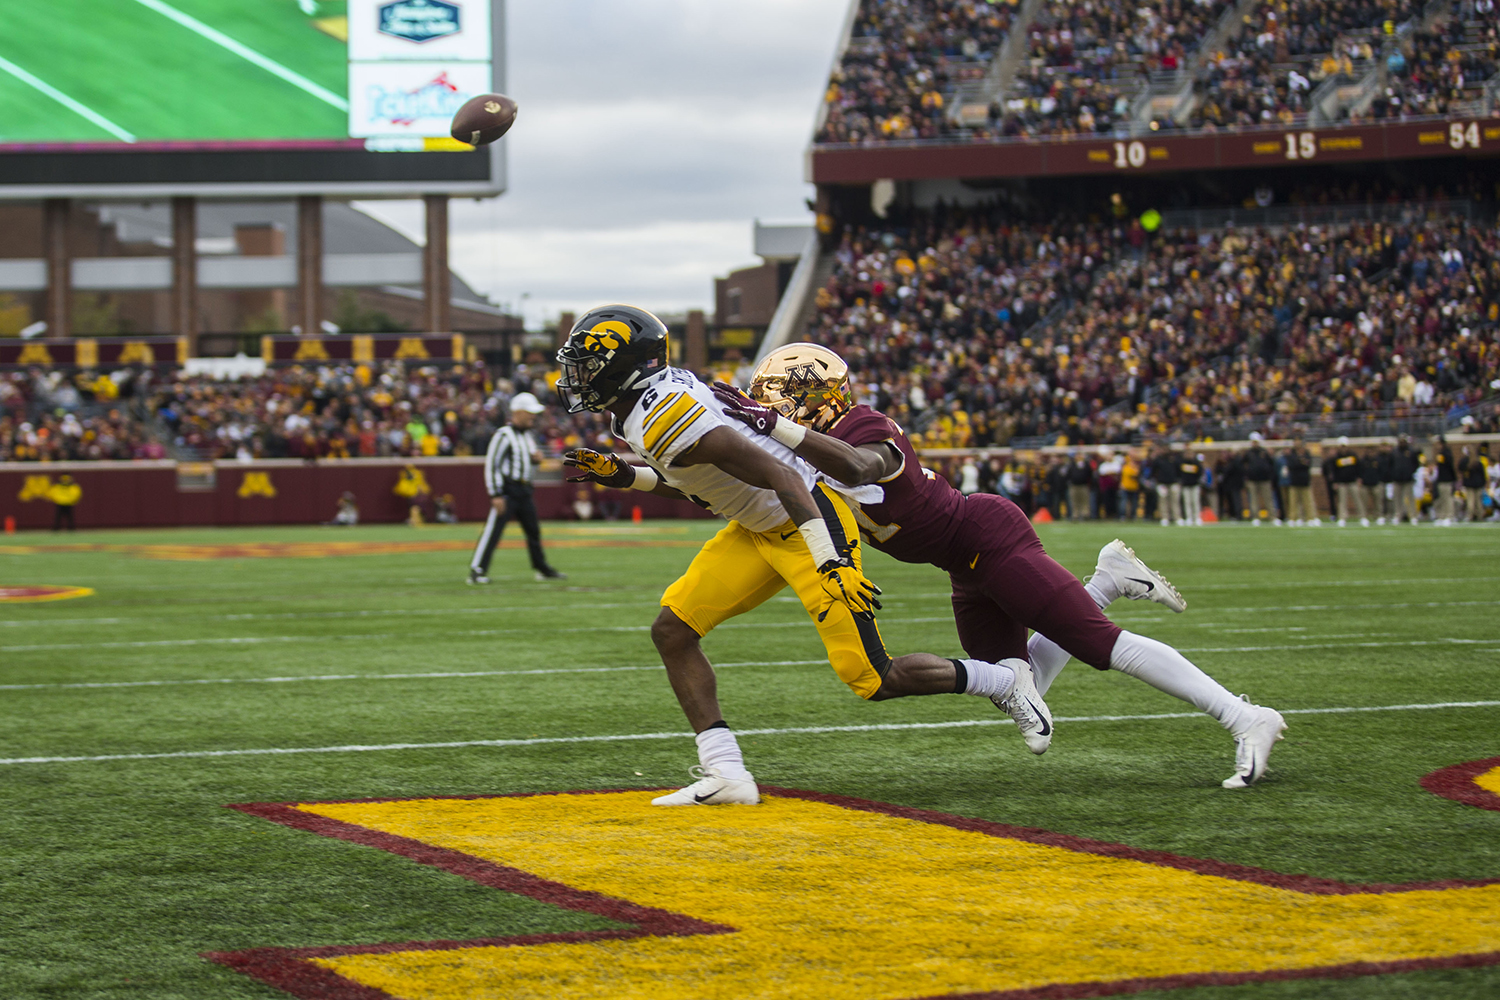 Iowa%27s+Ihmir-Smith+Marsette+attempts+to+catch+a+Minnesota+pass+during+the+Iowa%2FMinnesota+football+game+at+TCF+Bank+Stadium+in+Minneapolis+on+Saturday%2C+October+6%2C+2018.+The+Hawkeyes+defeated+the+Golden+Gophers%2C+48-31.+